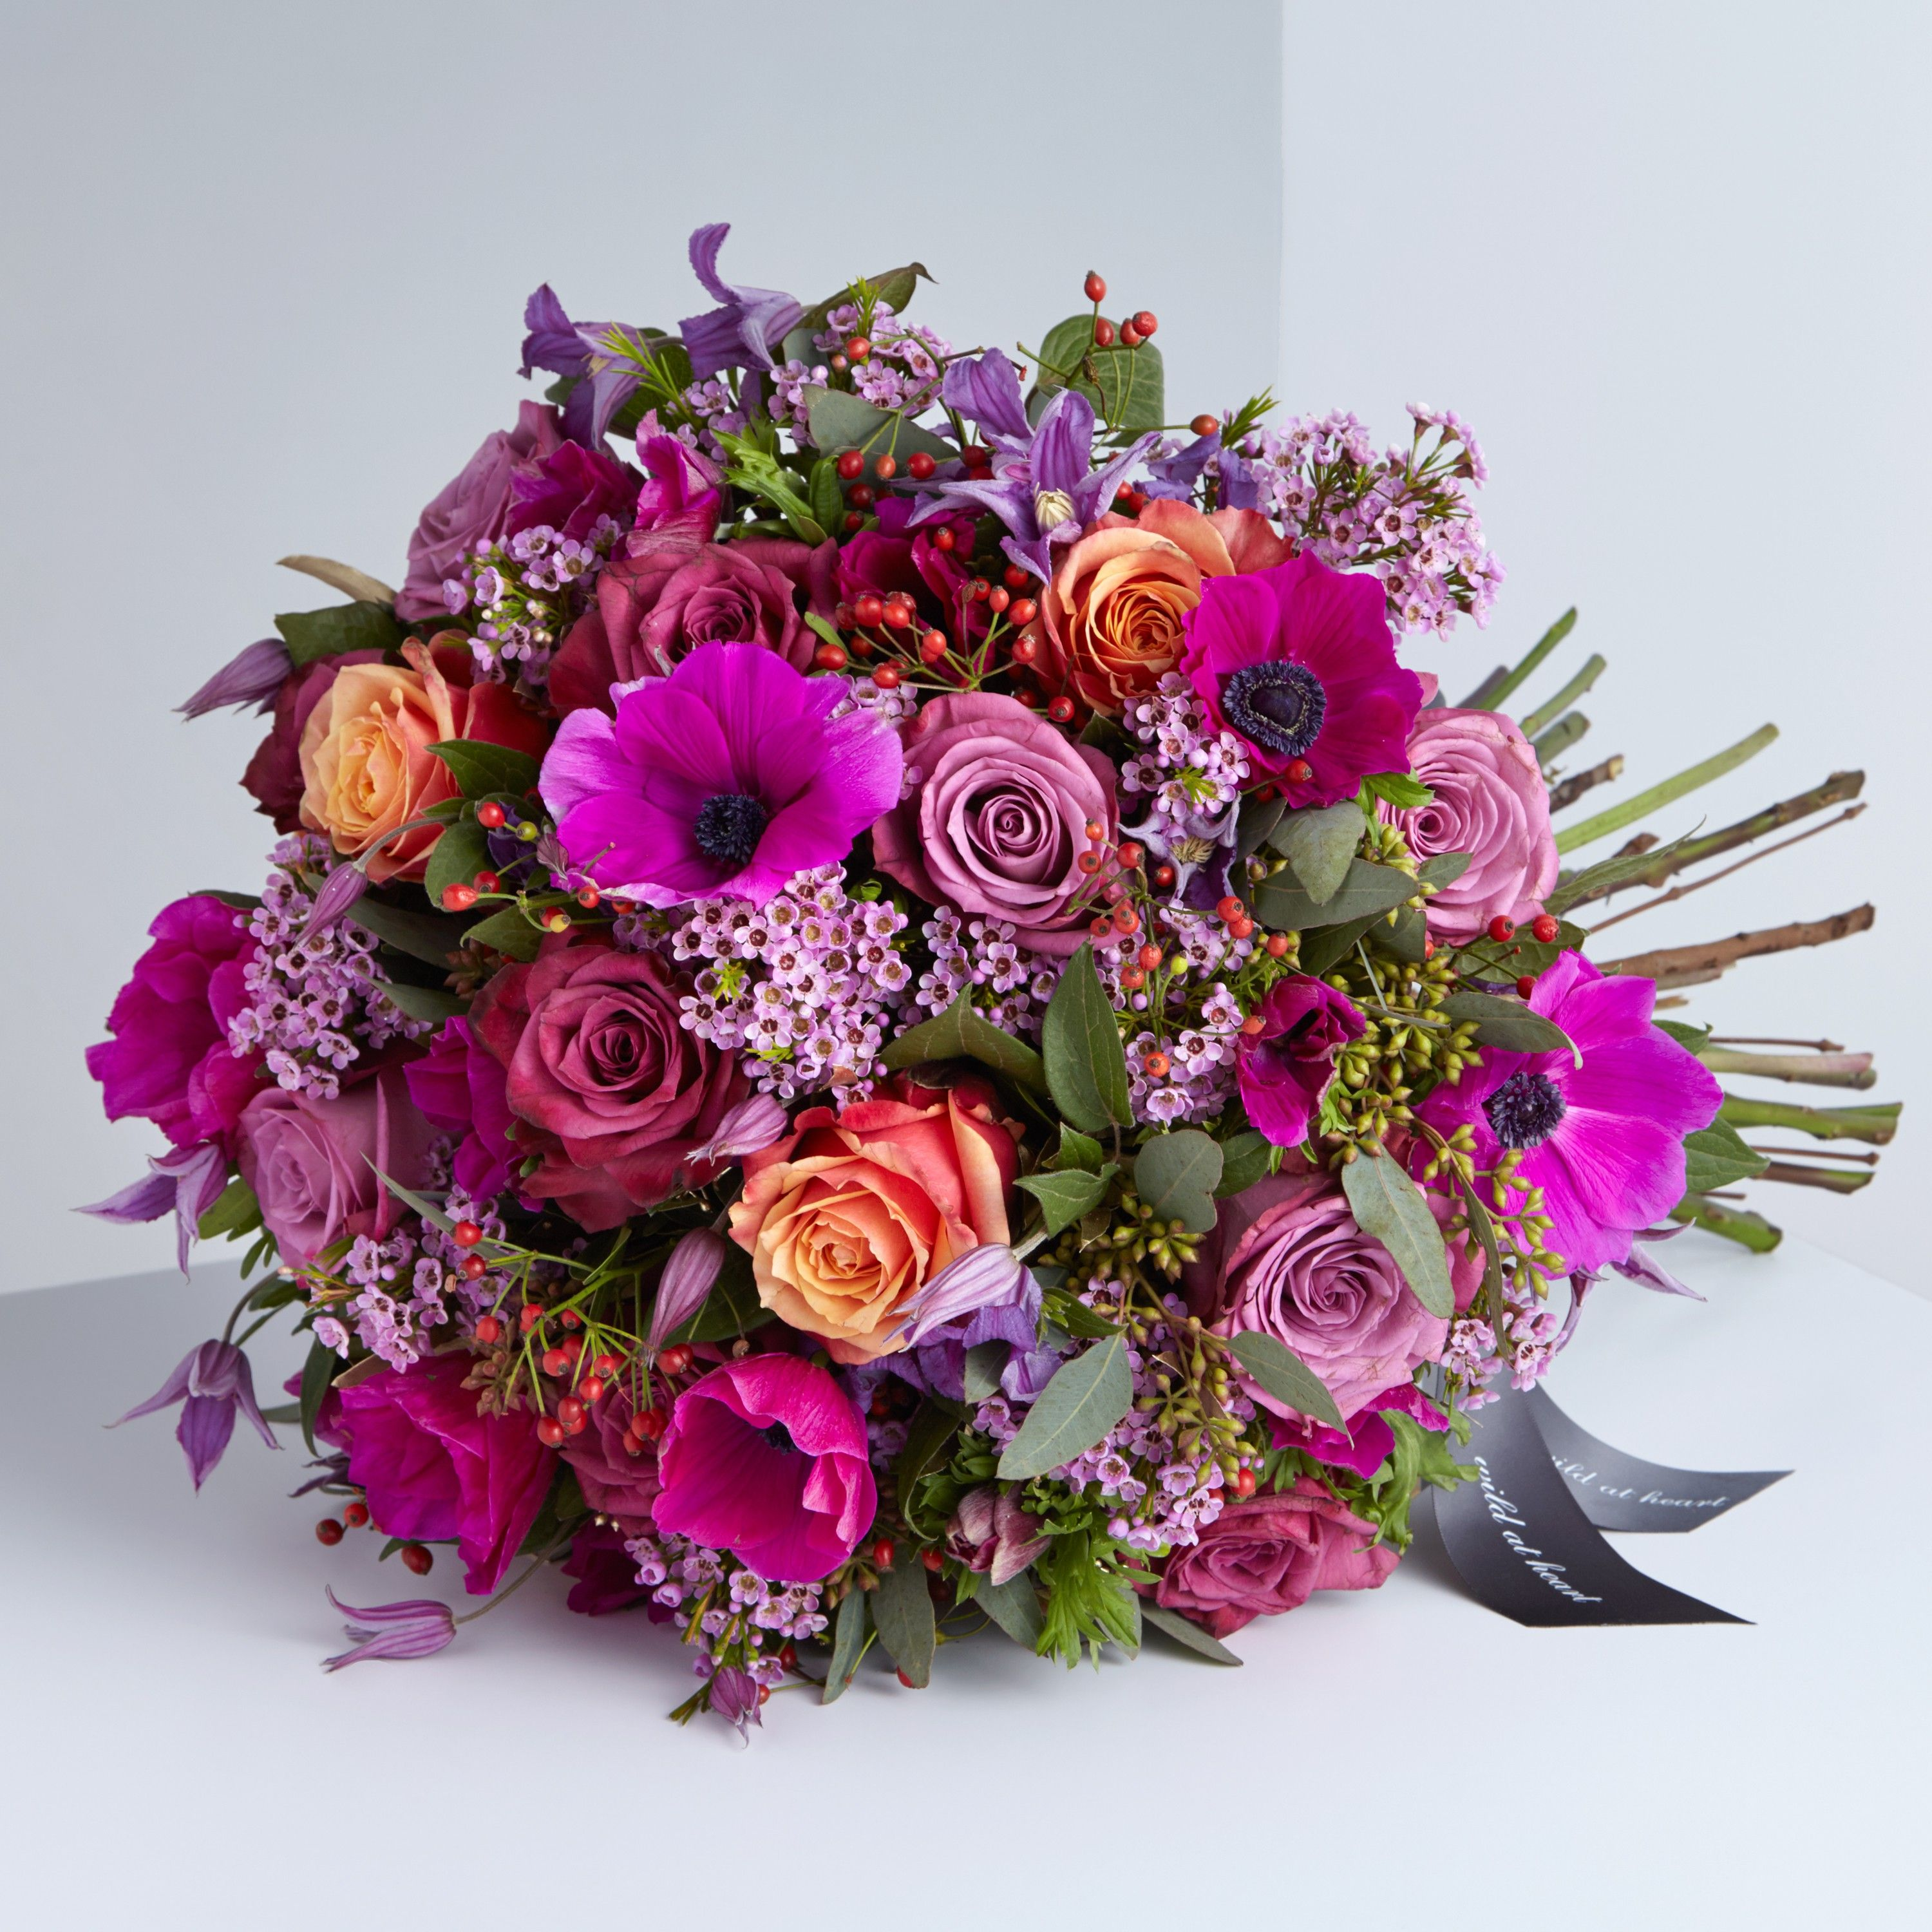 Island Bouquet Order luxury flowers nationwide for